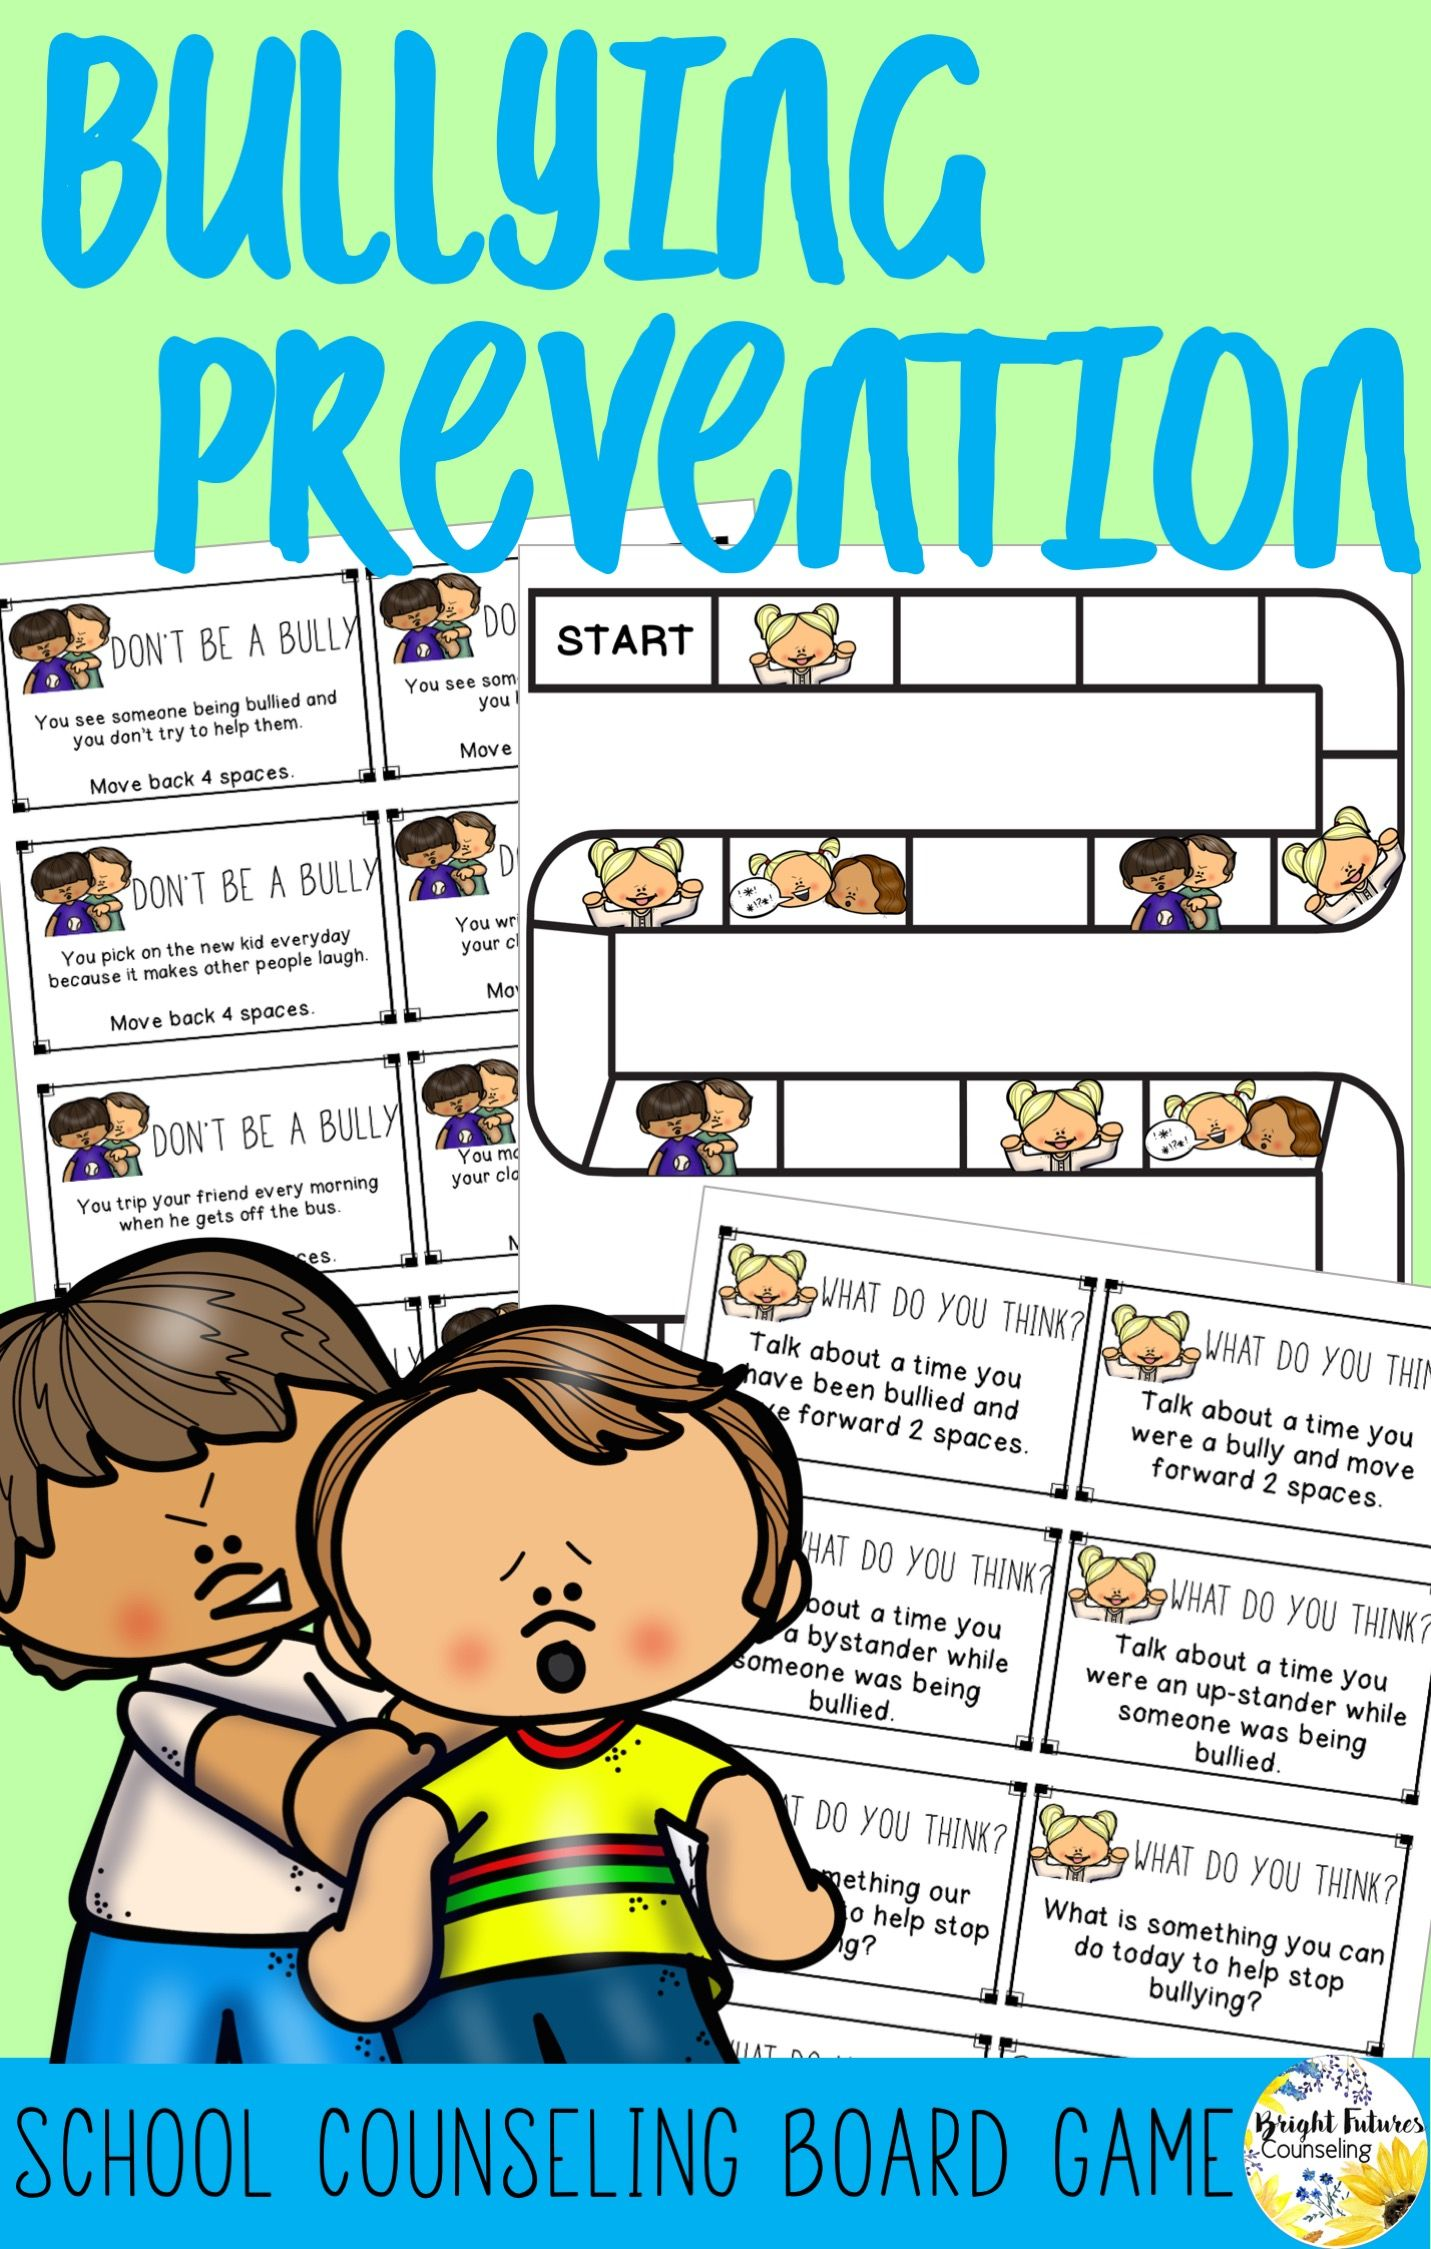 Bullying Prevention Board Game School Counseling Game